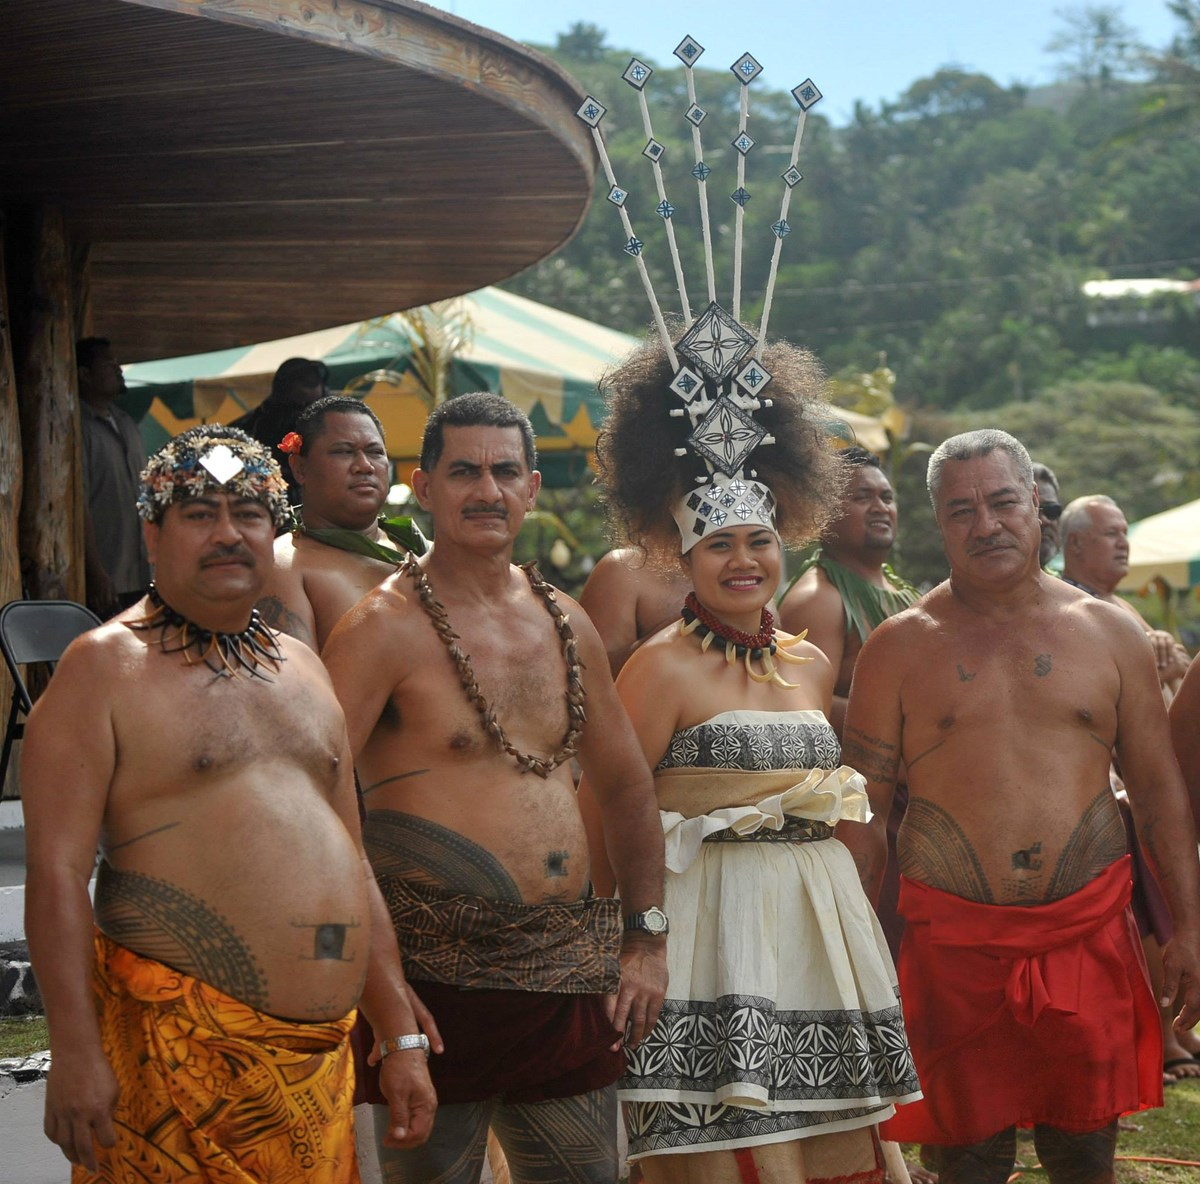 samoan chiefs and taupou in traditional clothing